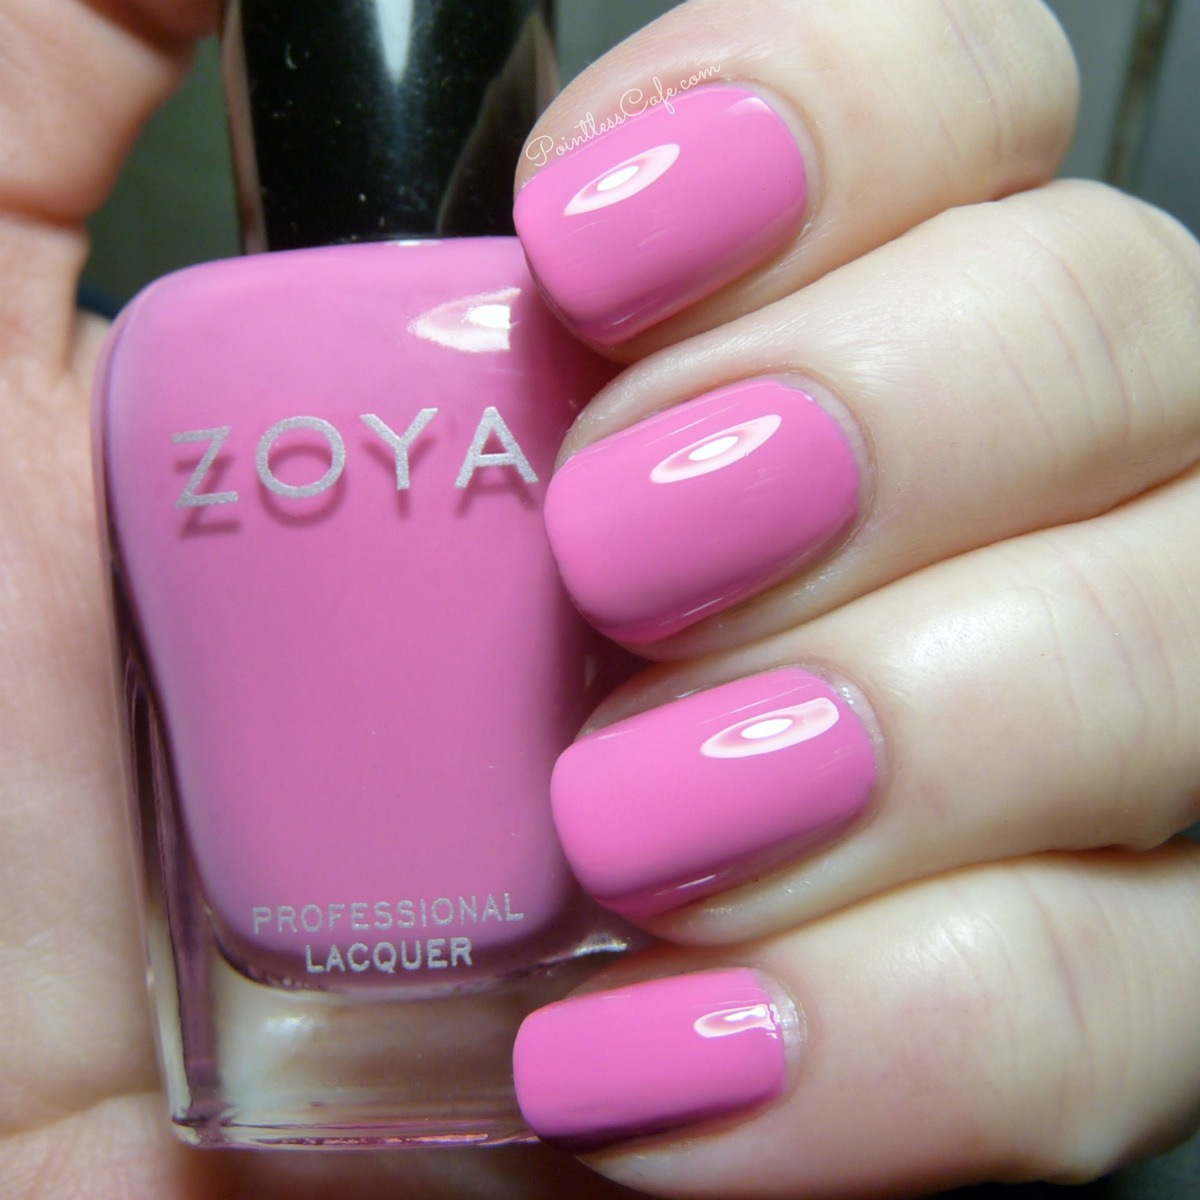 Zoya Delight Collection Swatches and Review with Nail Art and